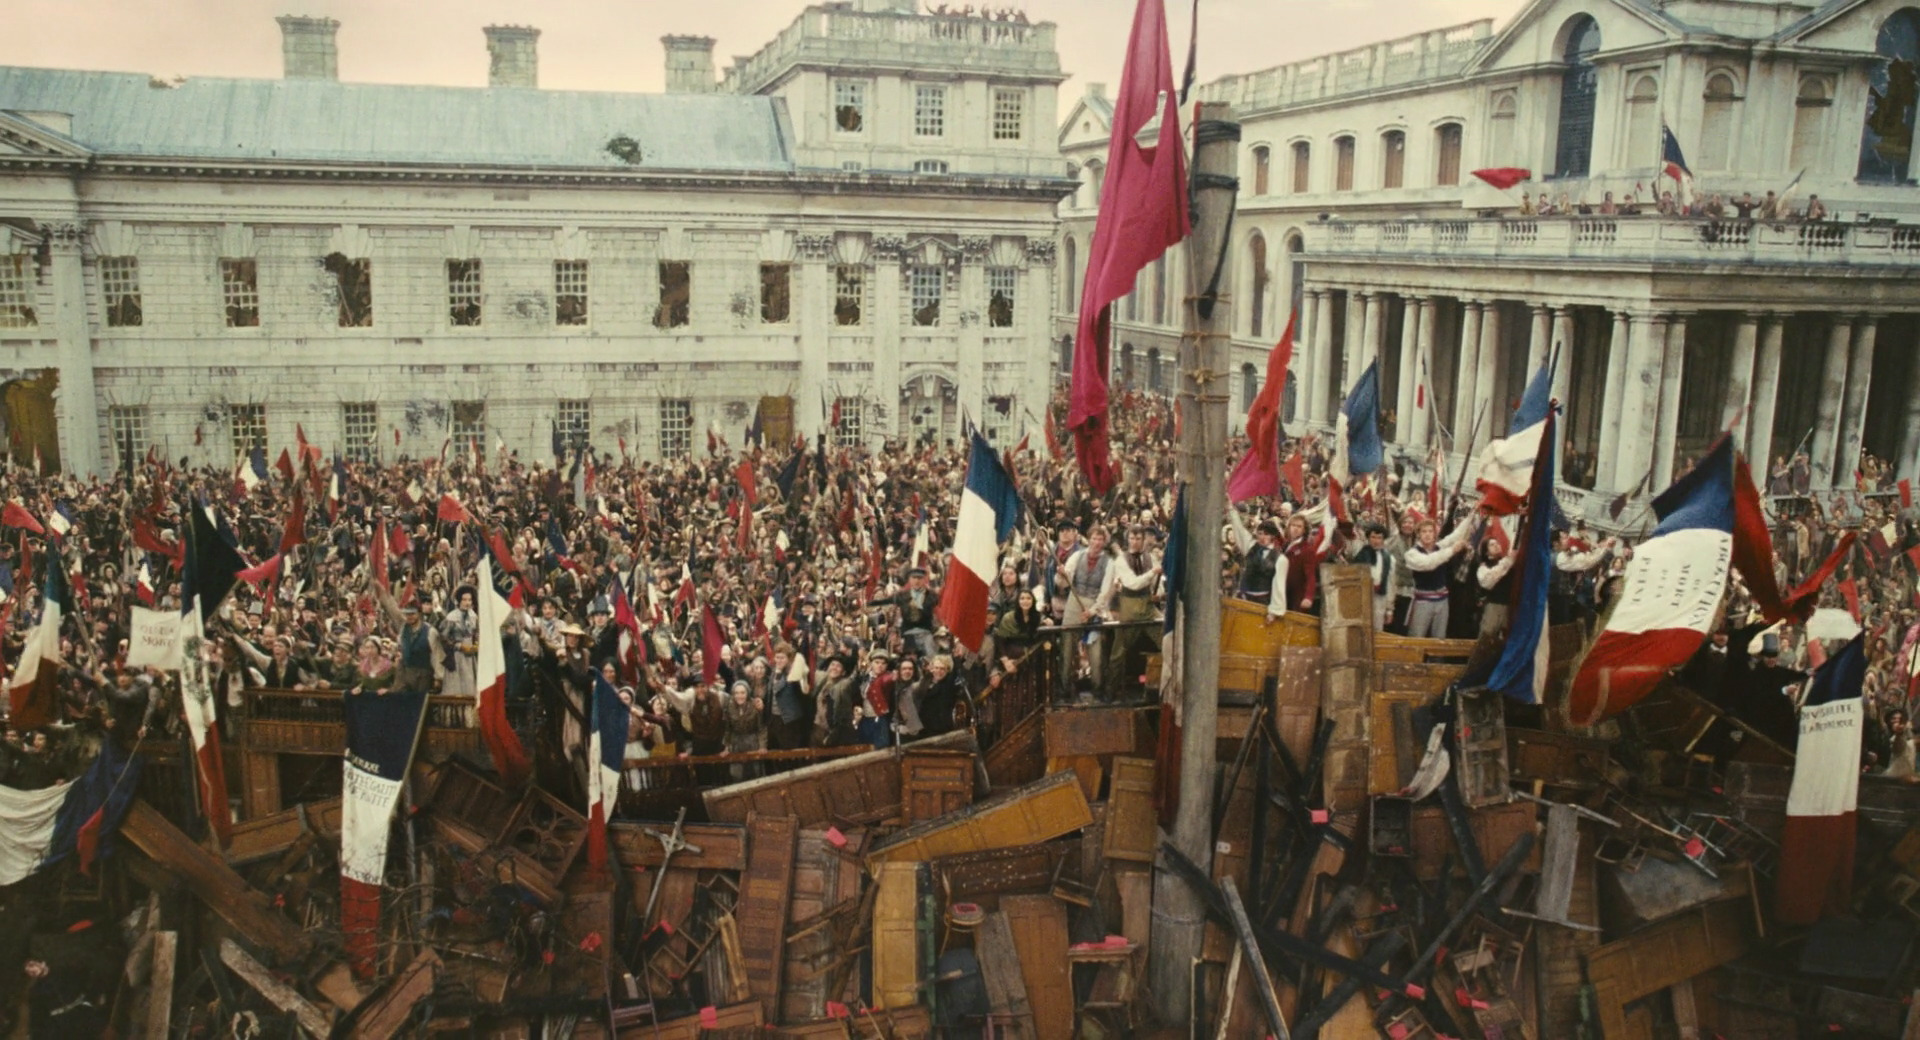 Les Misérables and the Church Militant